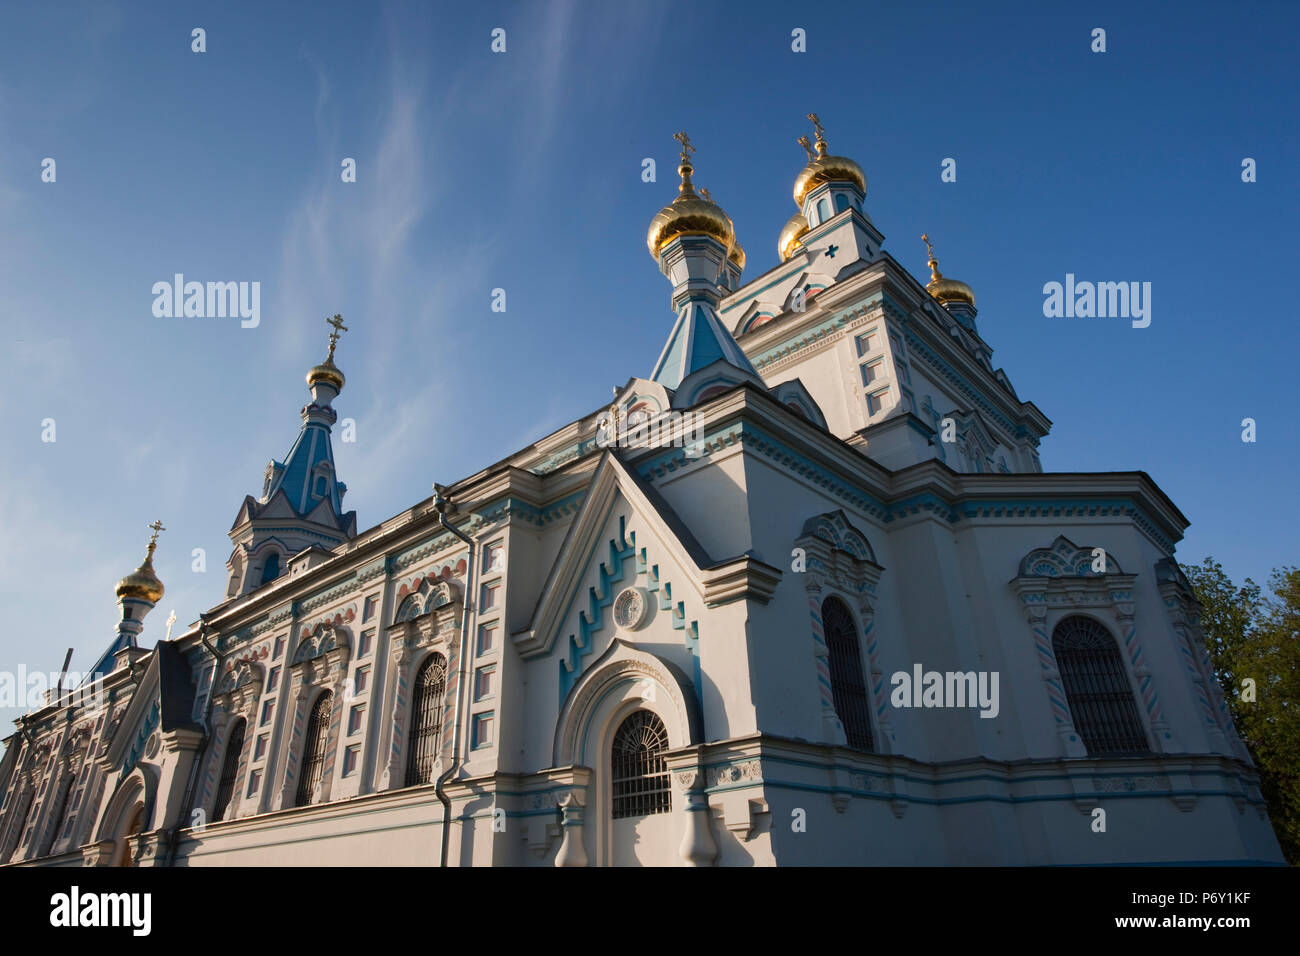 Latvia, Riga, Southeastern Latvia, Latgale Region, Daugava River Valley, Daugavpils, Russian Orthodox Church - Stock Image